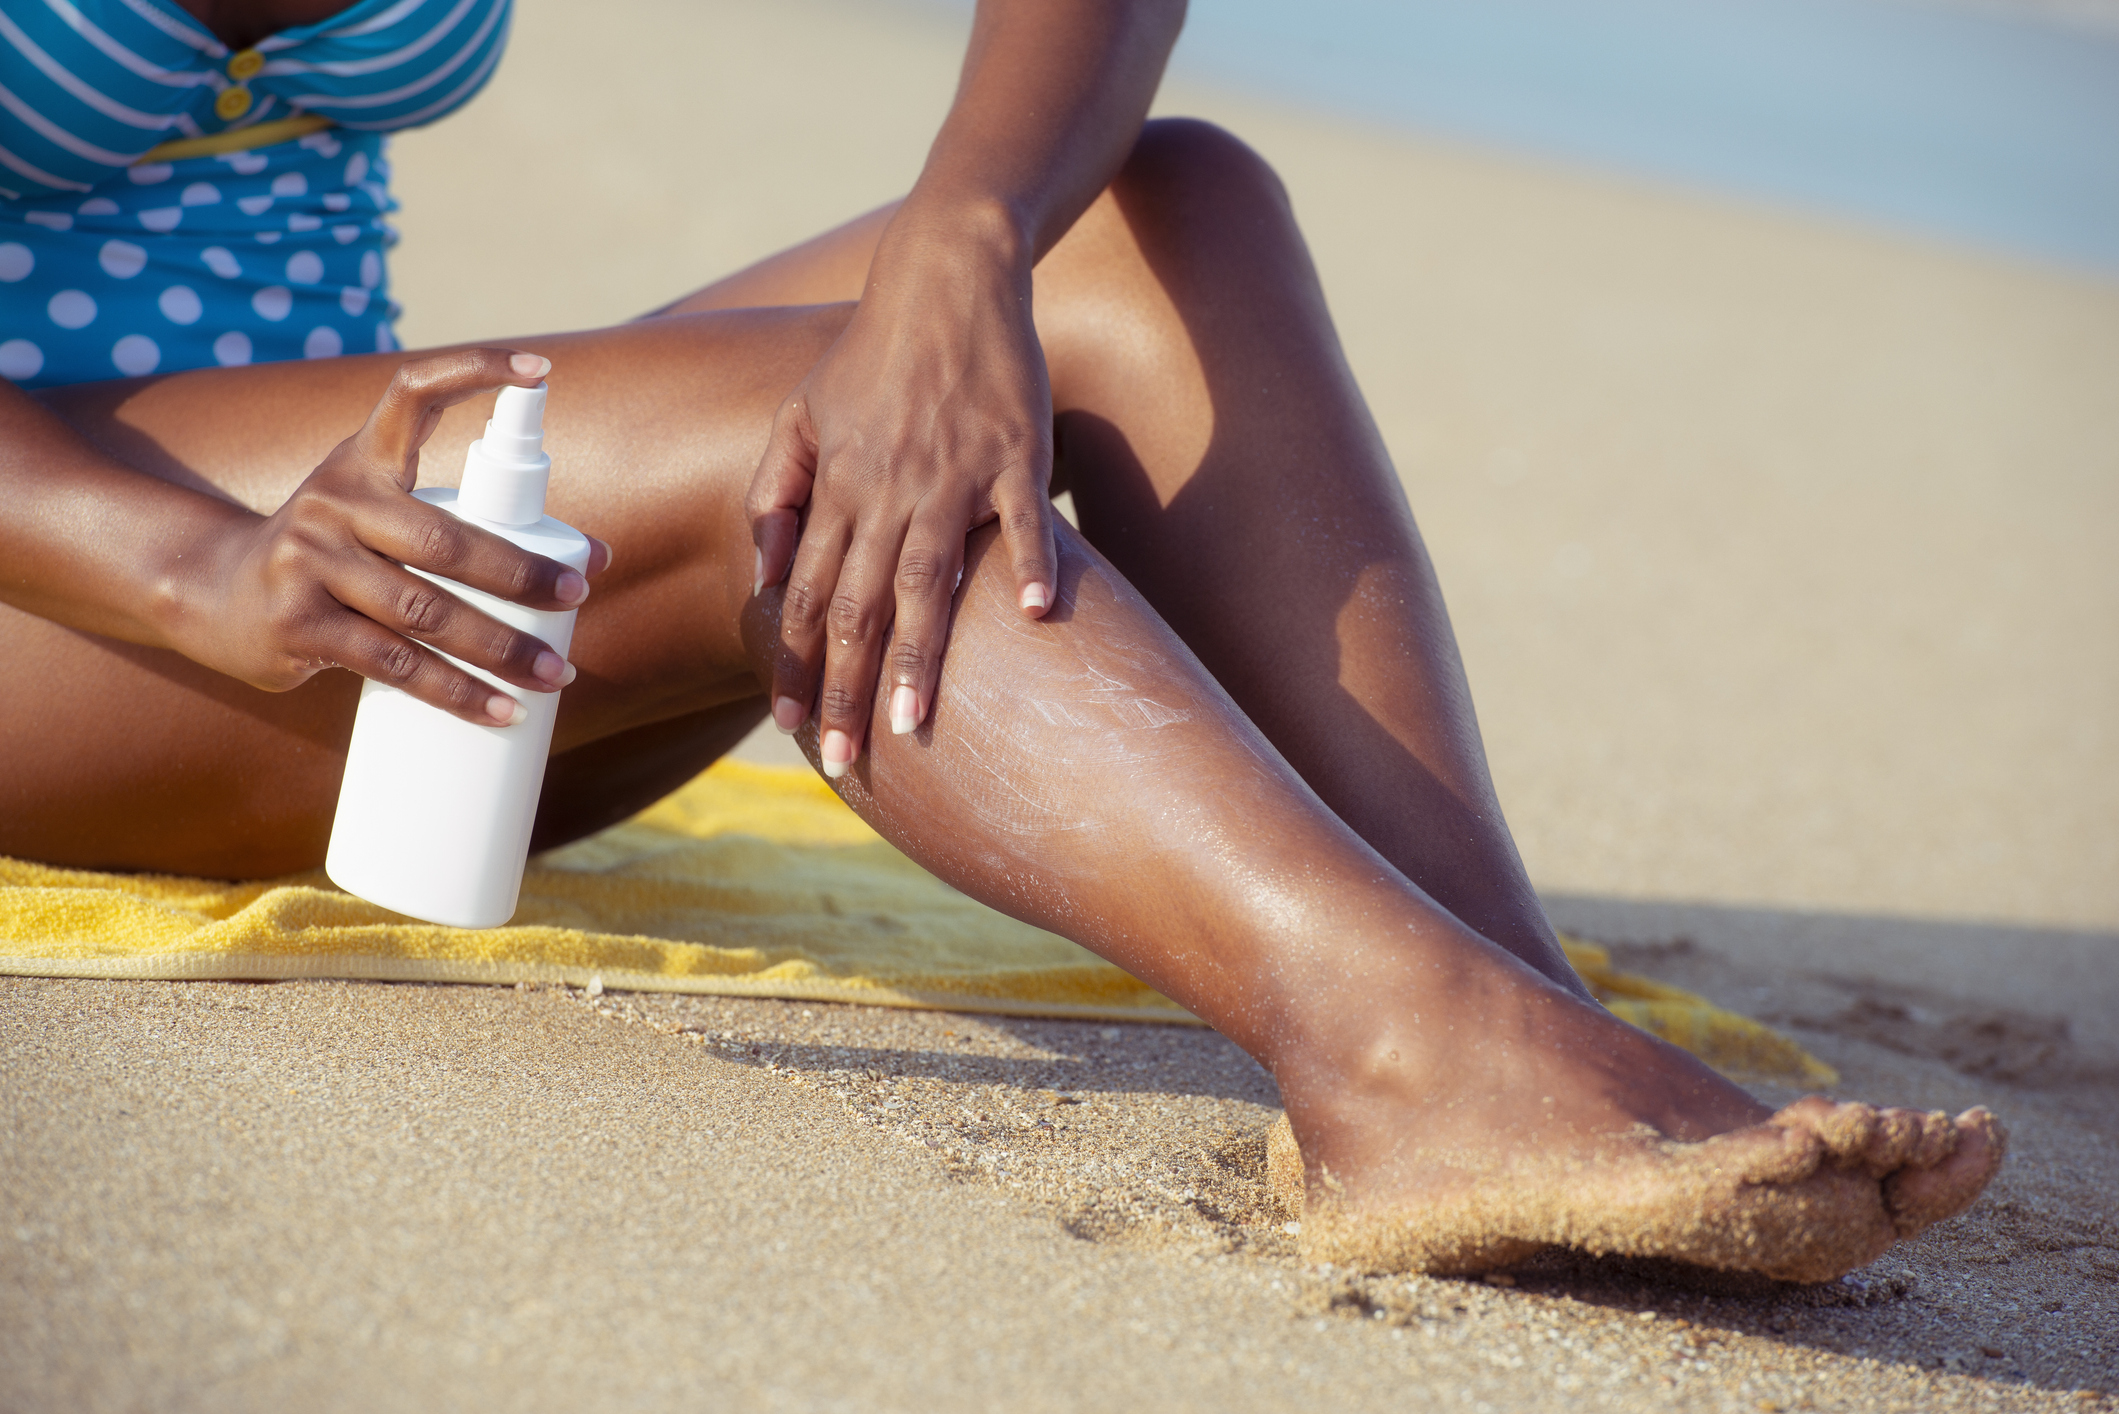 Here's what you need to know about skin cancer ahead of summertime